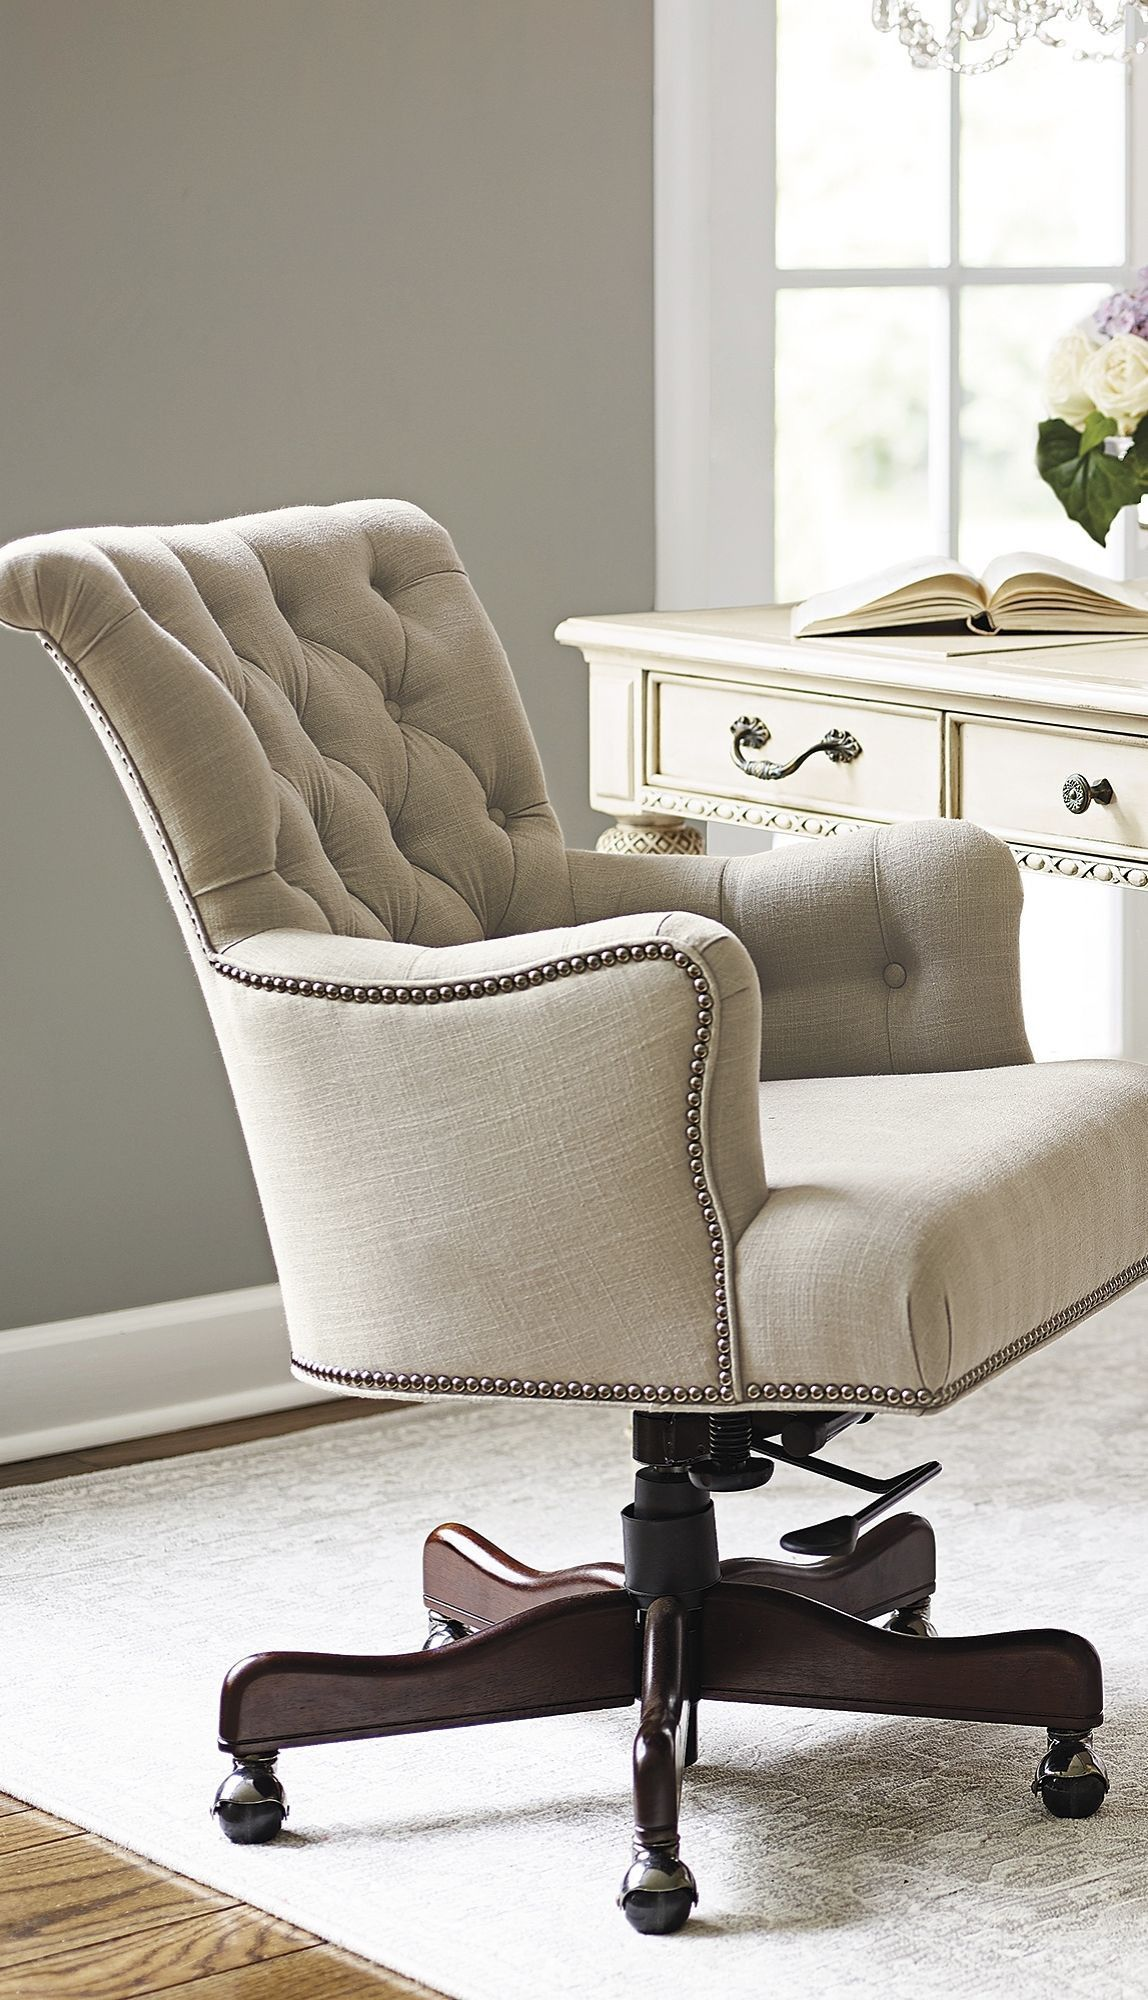 Elegant office chairs 2021 home office chairs best home